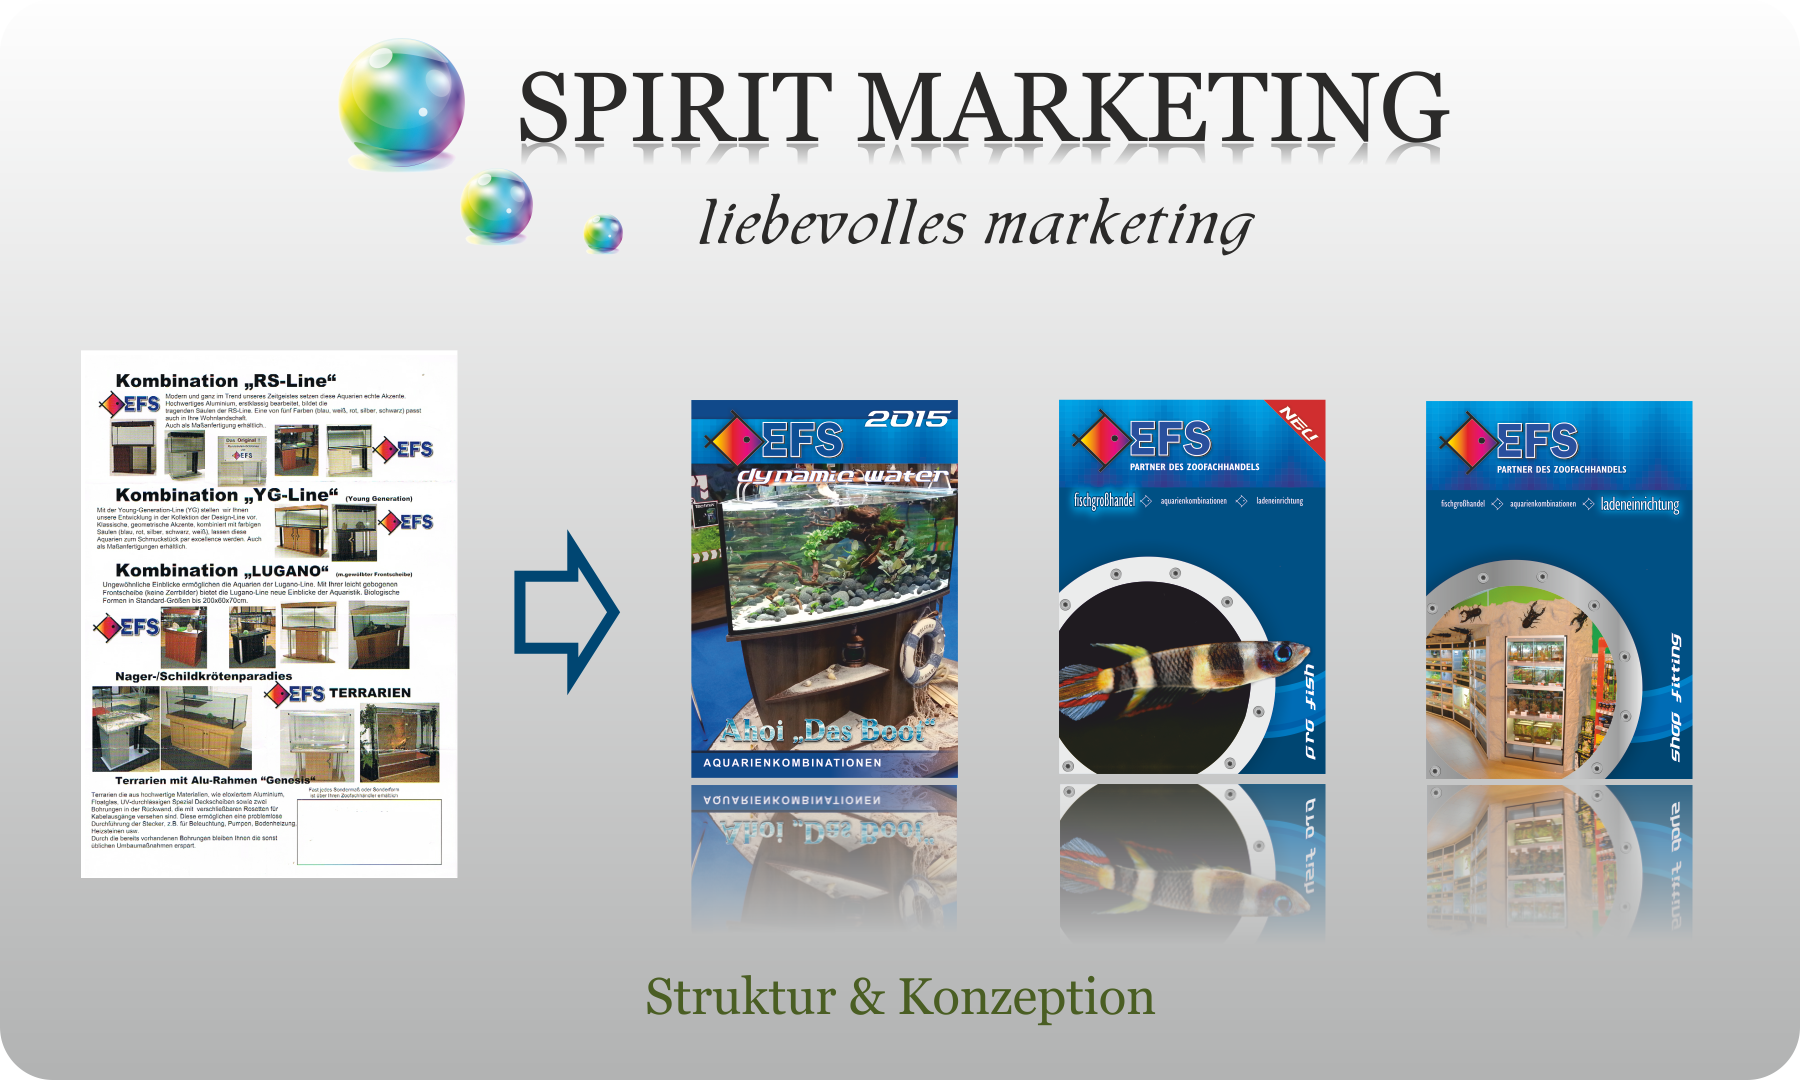 SPIRIT MARKETING - Struktur & Konzeption